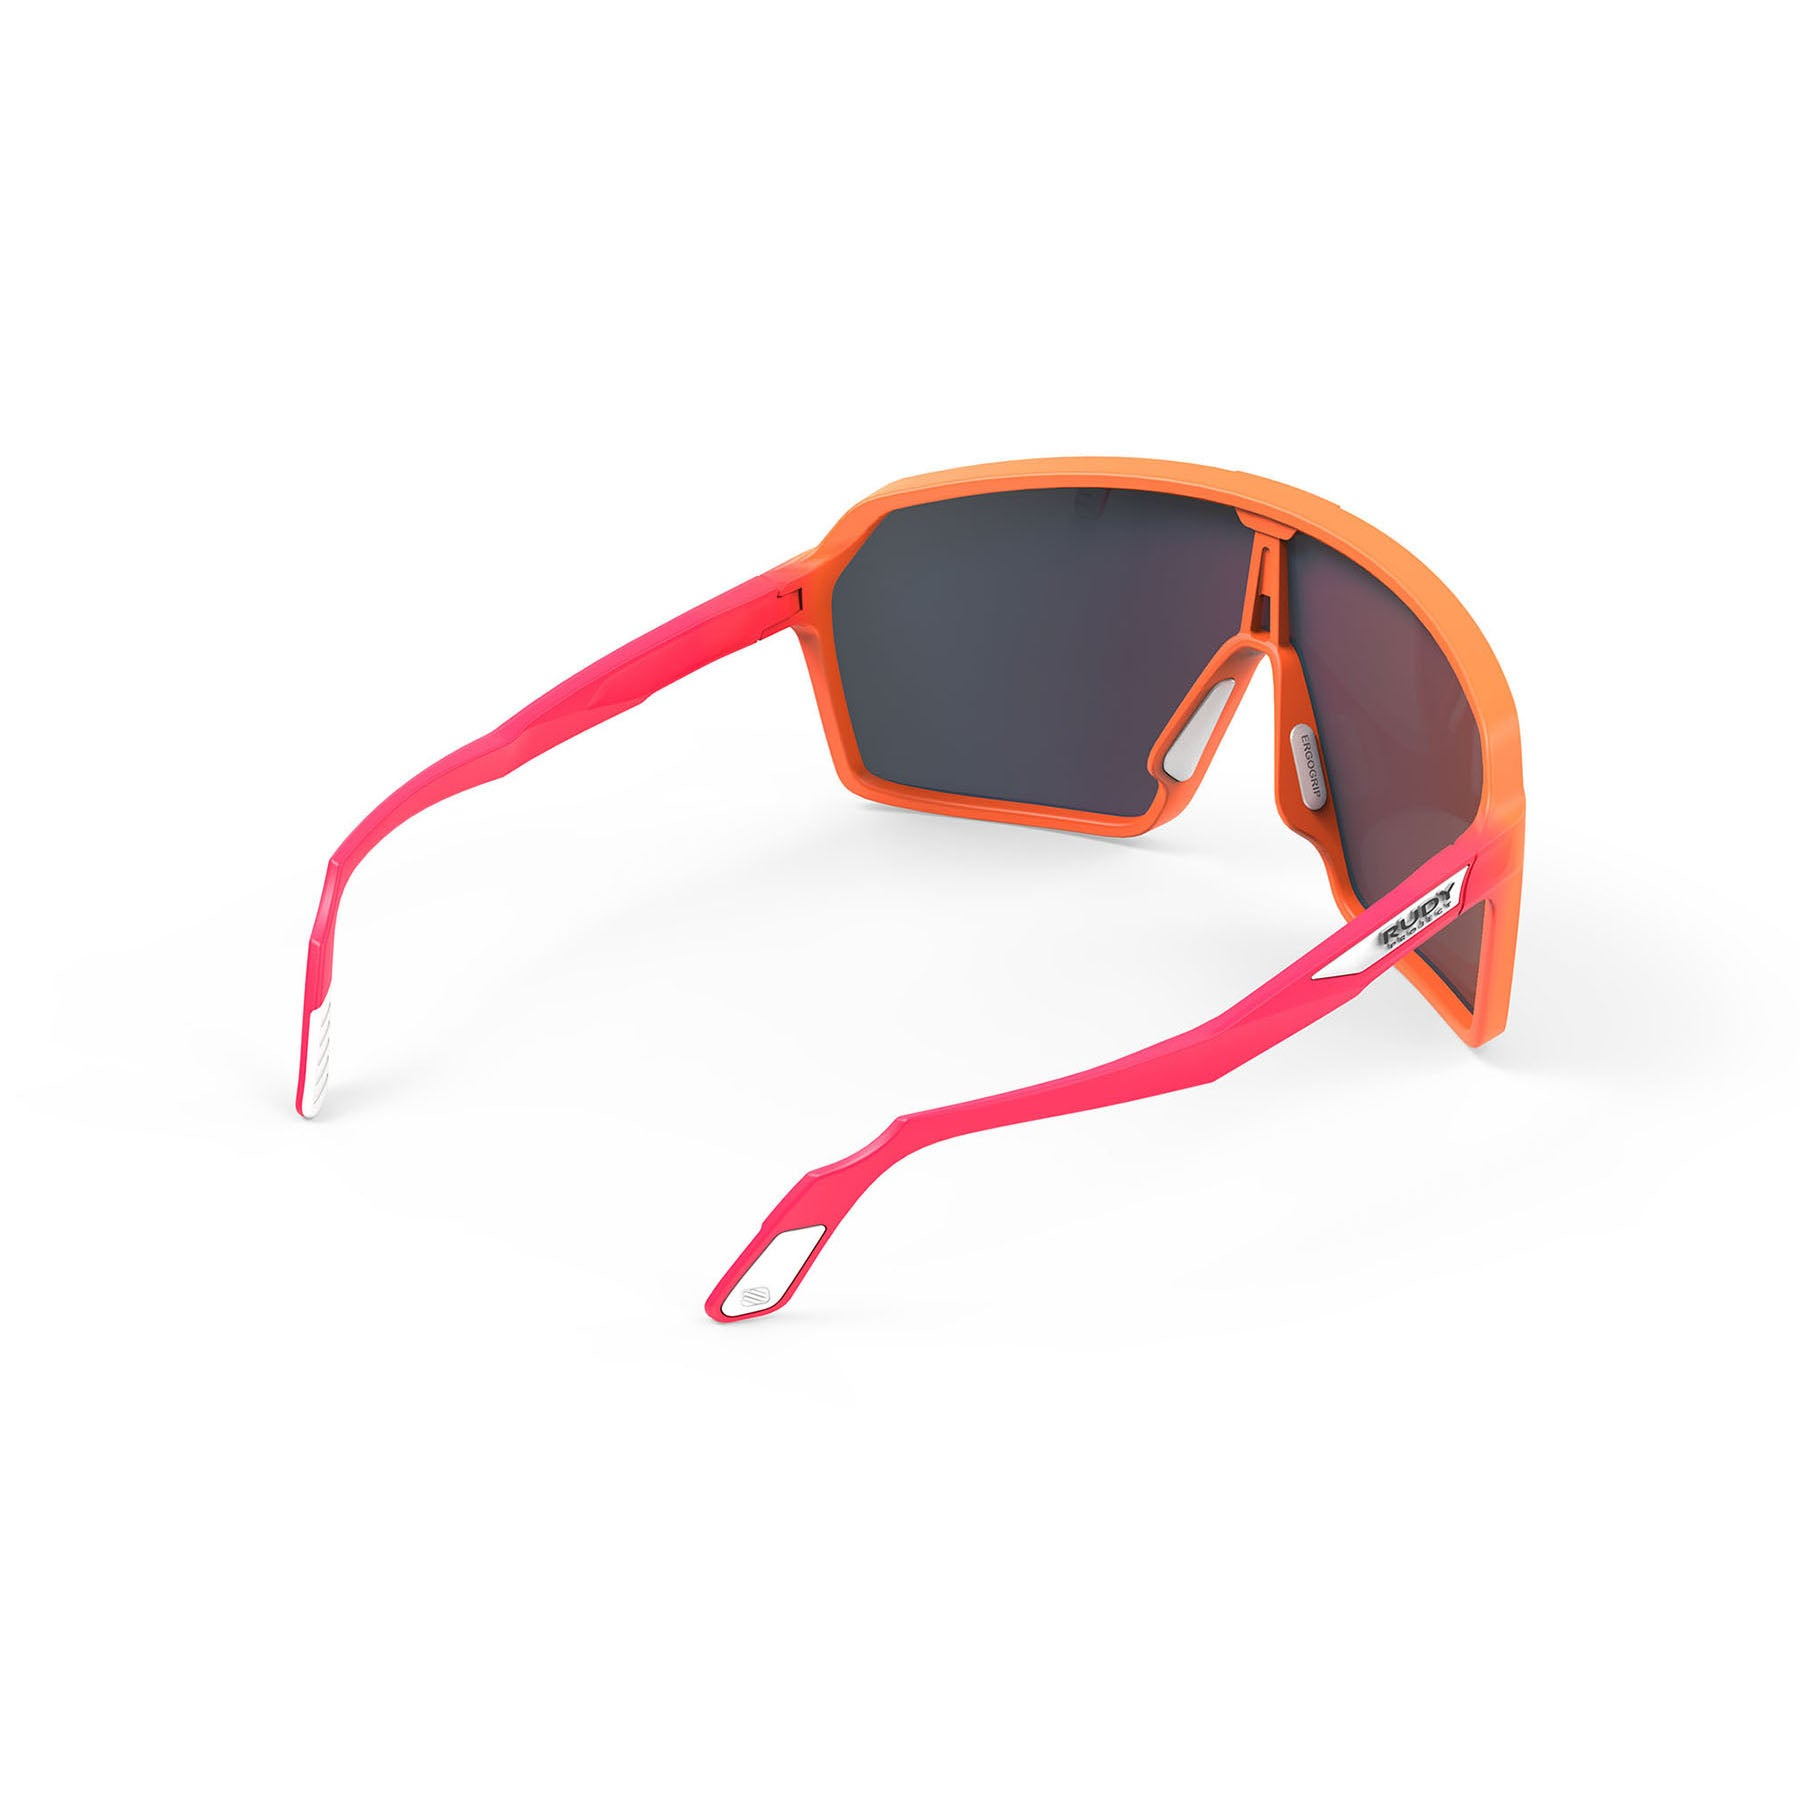 Rudy Project - Spinshield - frame color: Mandarin Fade Coral - lens color: Multilaser Red - photo angle: Top Back Angle Variant Hover Image